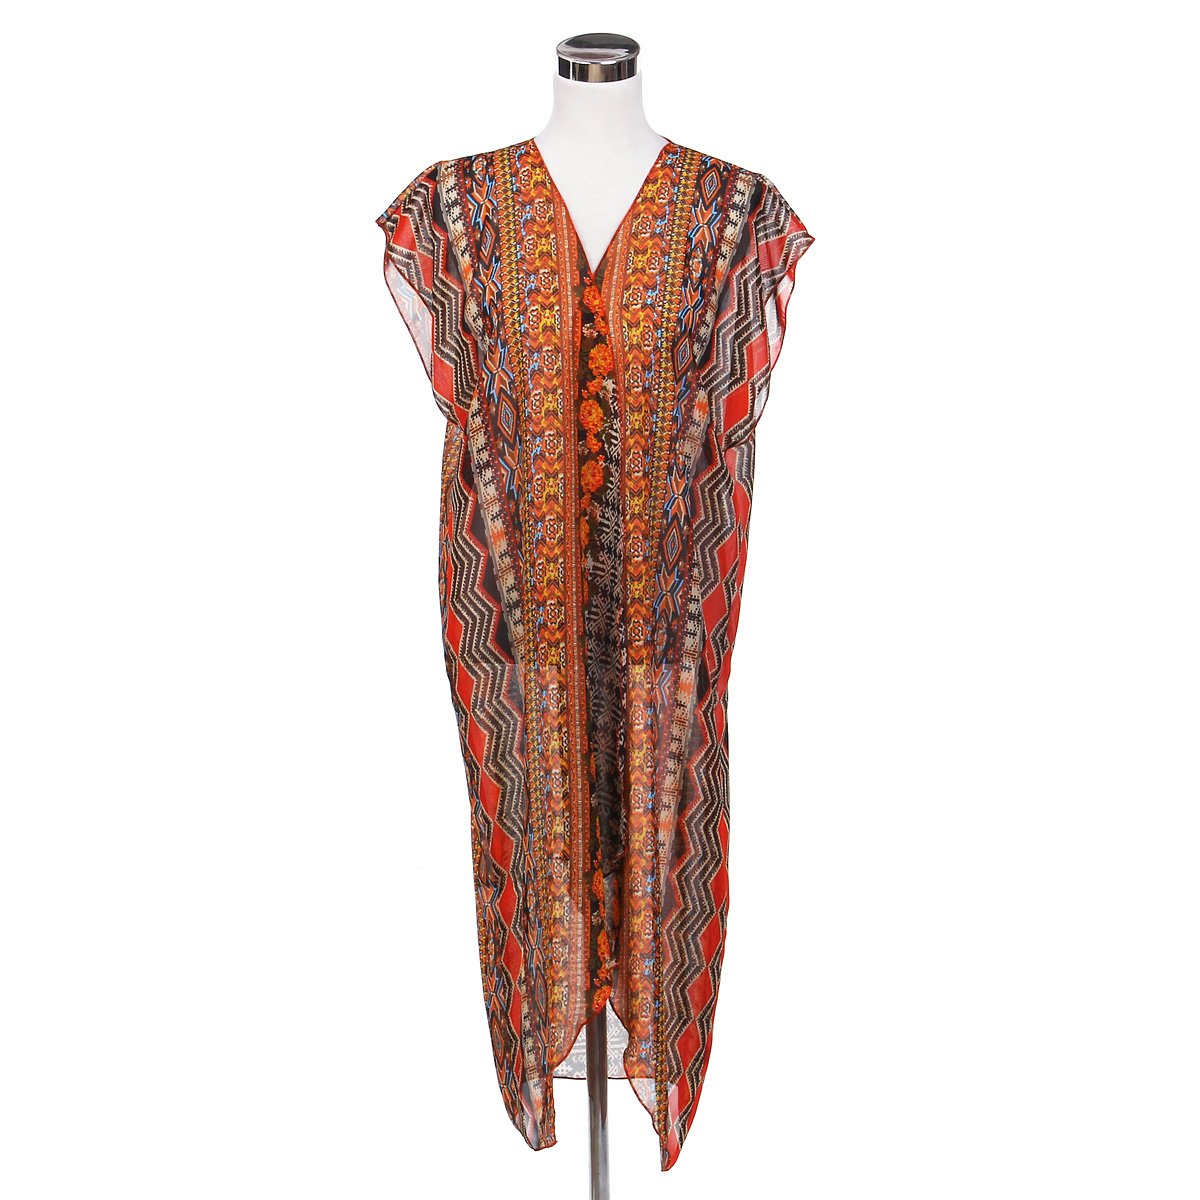 TrendsBlue Long Bohemian Tribal Chiffon Sheer Kimono Wrap Vest Beach Cover Up, Orange